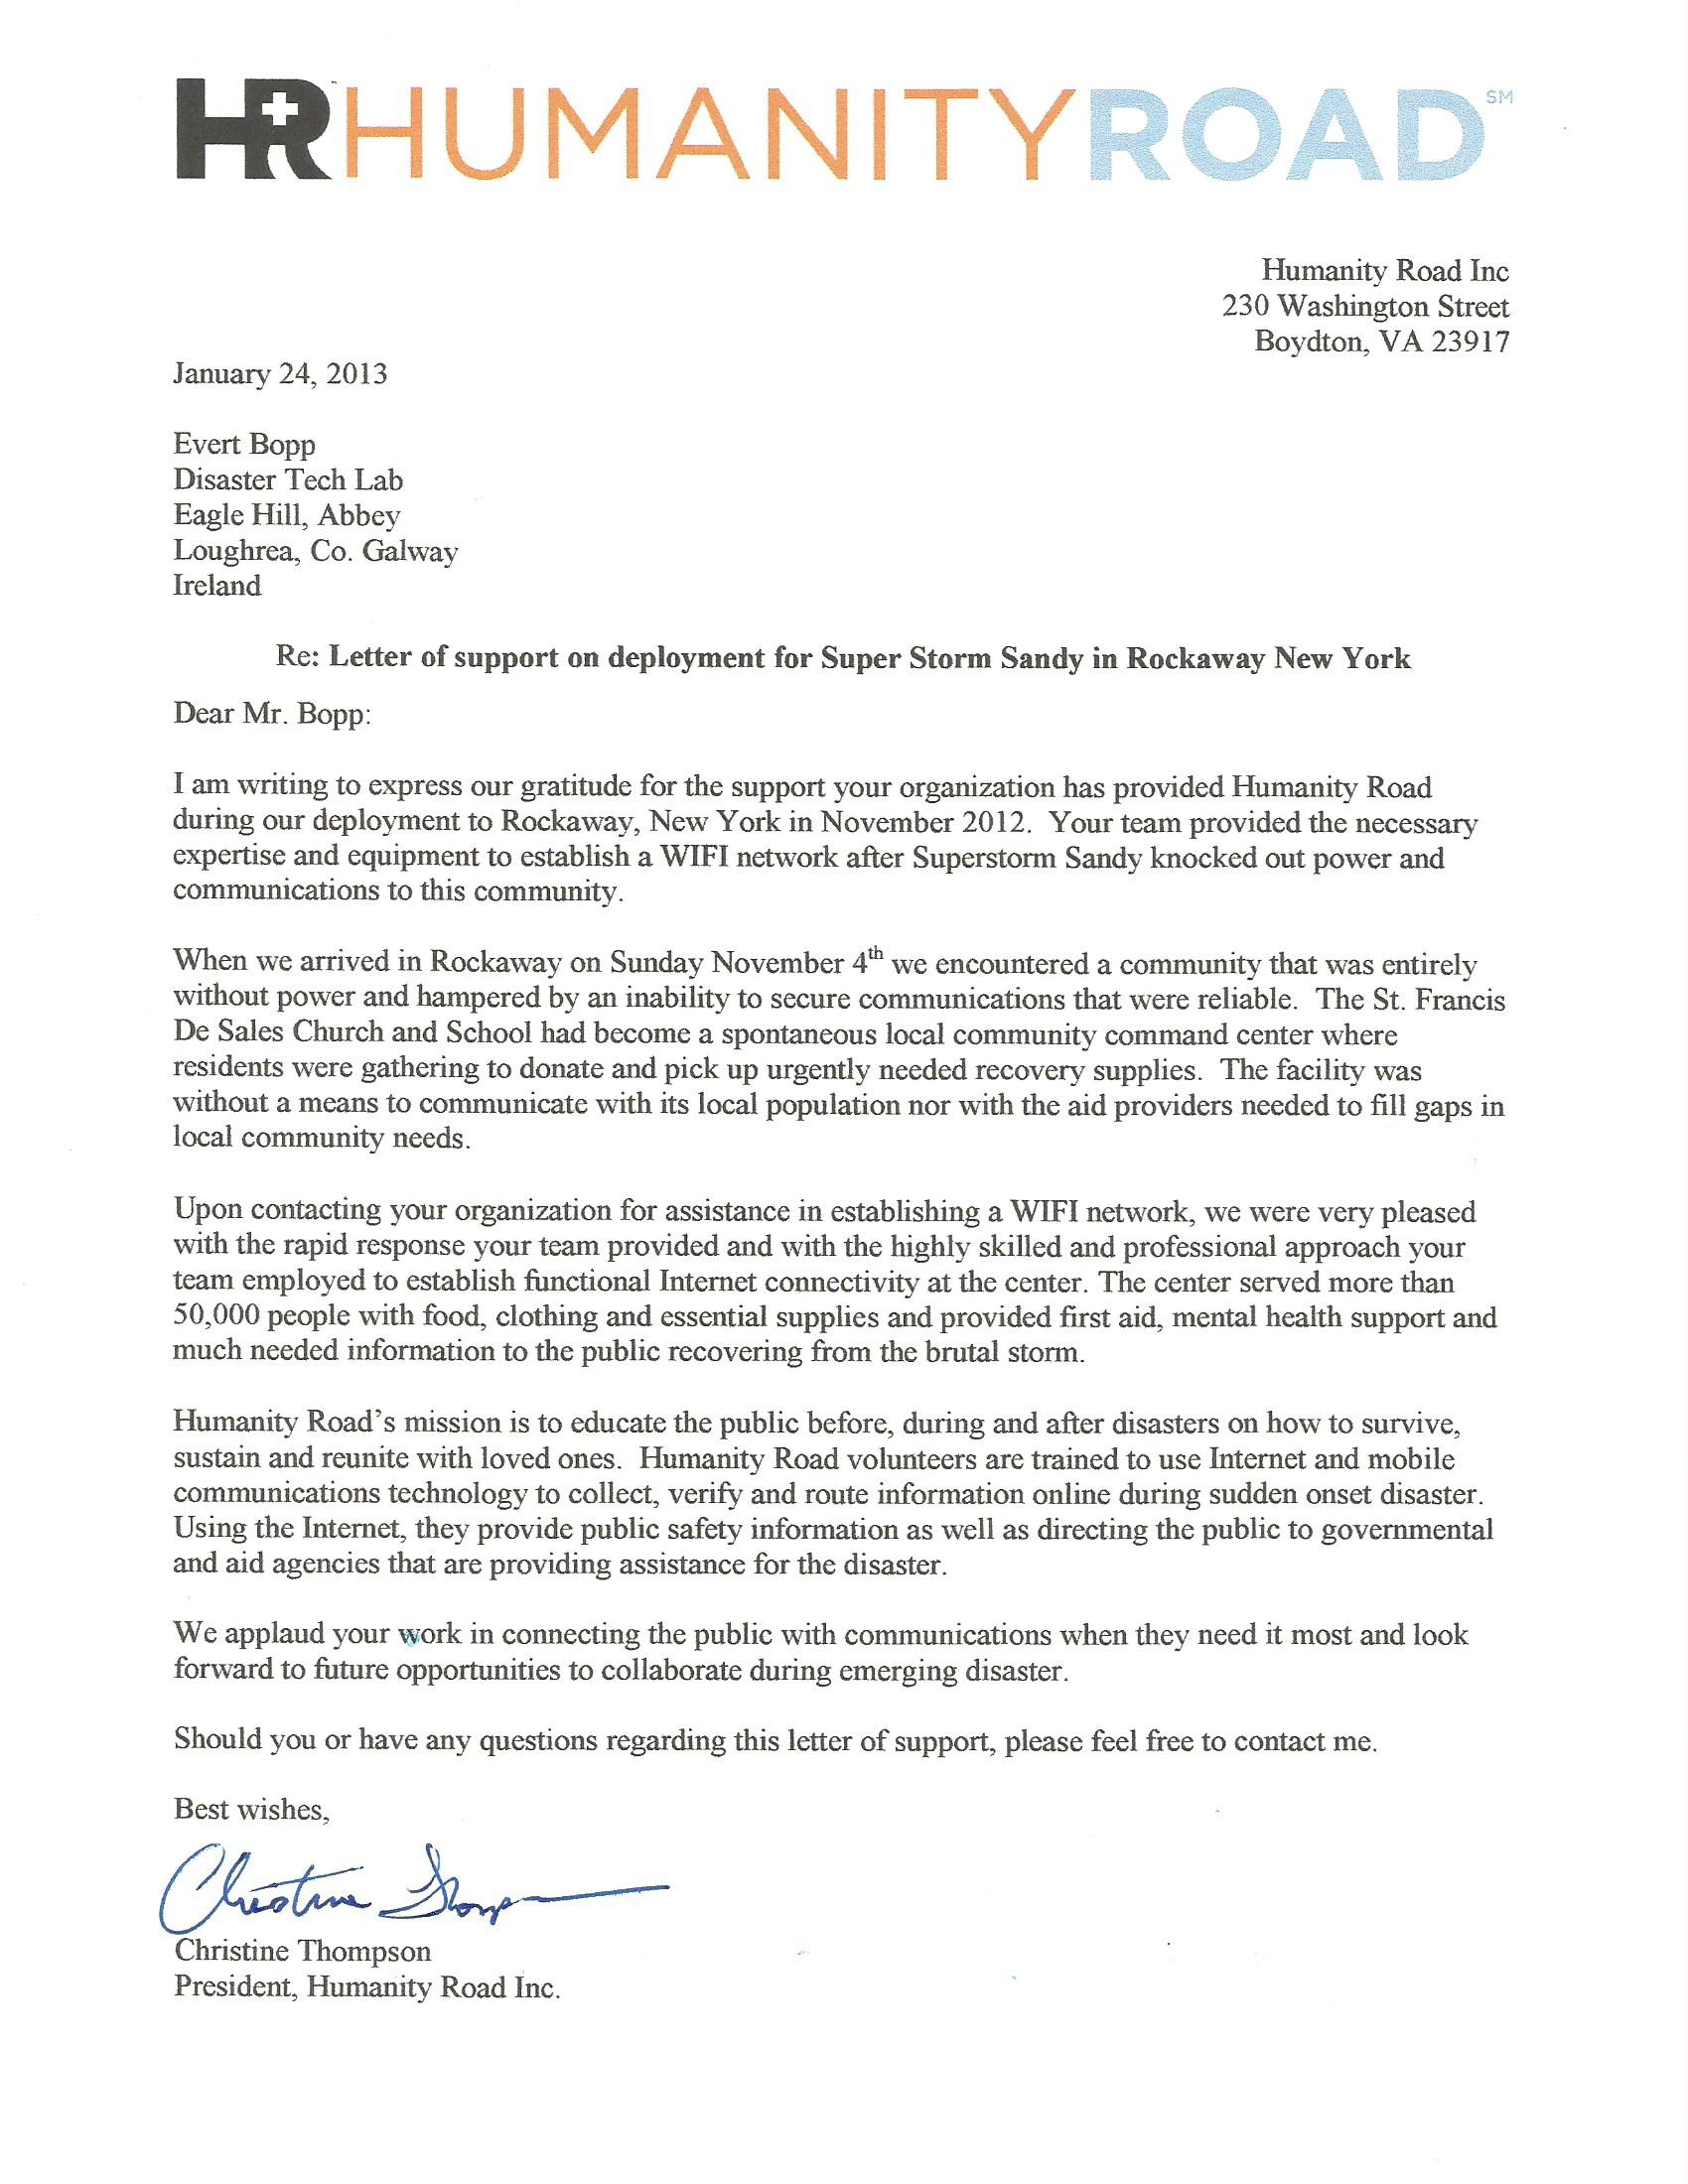 Jan 24 2013 E Bopp Letter of Support